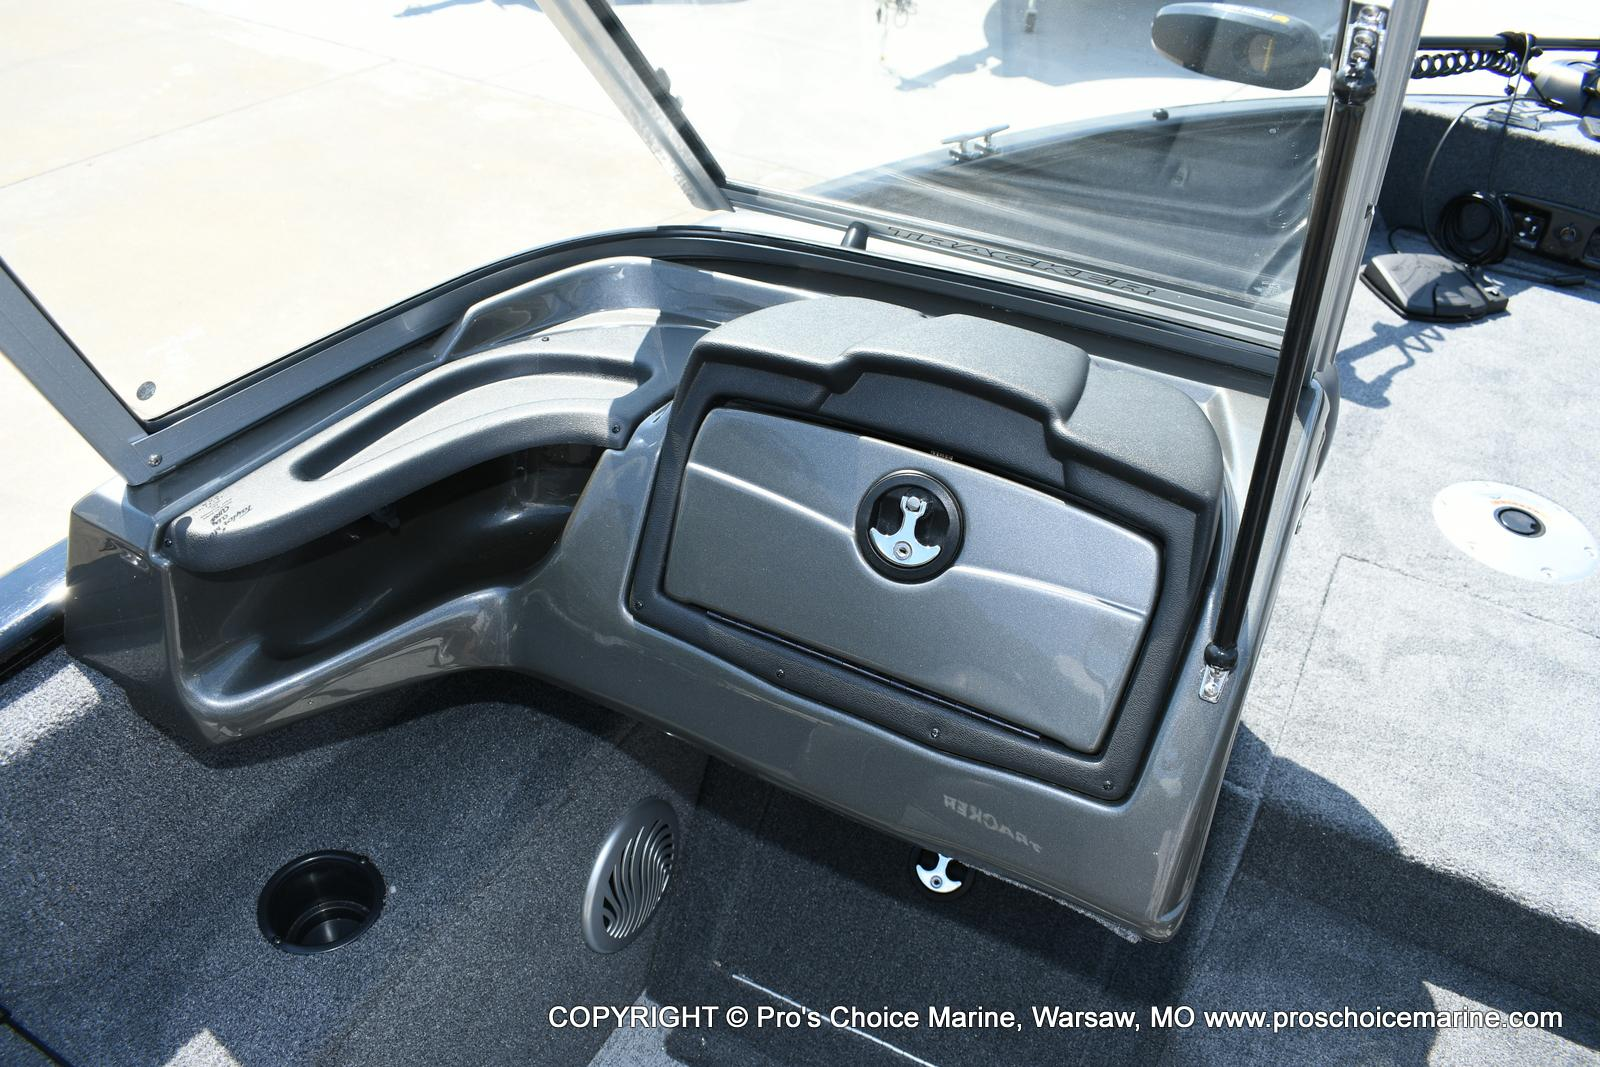 2020 Tracker Boats boat for sale, model of the boat is Pro Guide V-175 Combo & Image # 42 of 50